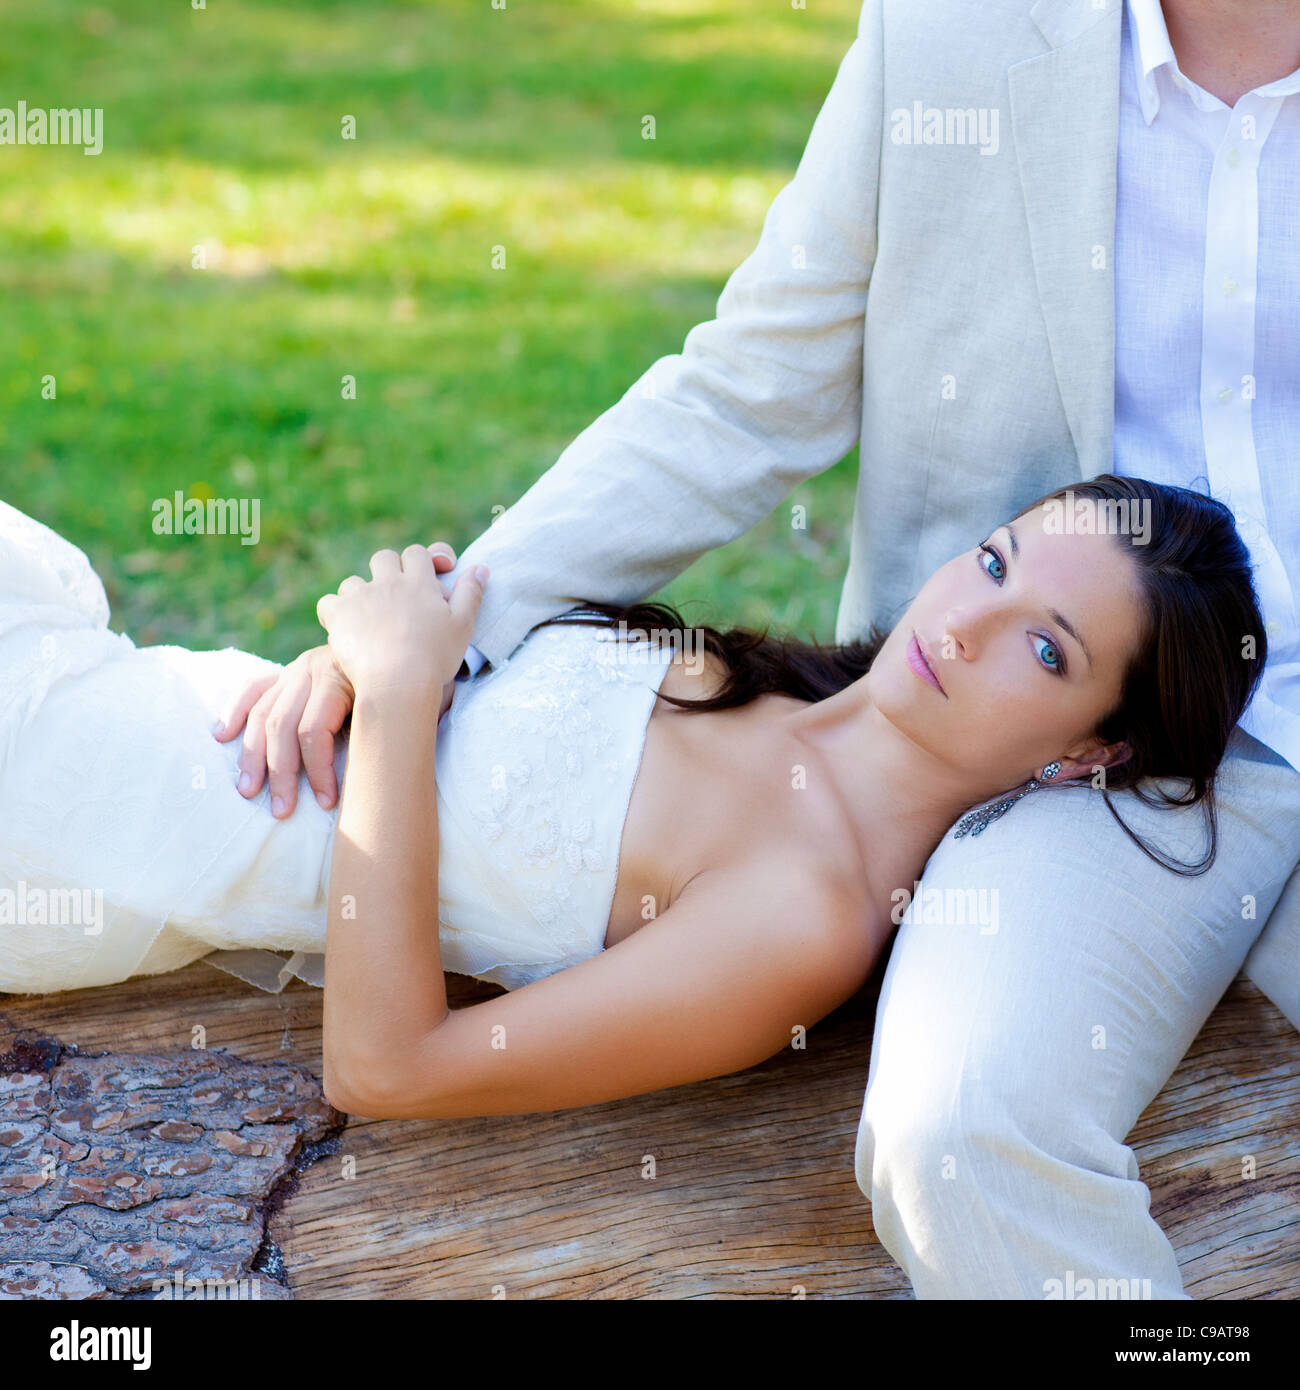 woman lying on husband leg in a park trunk just married - Stock Image